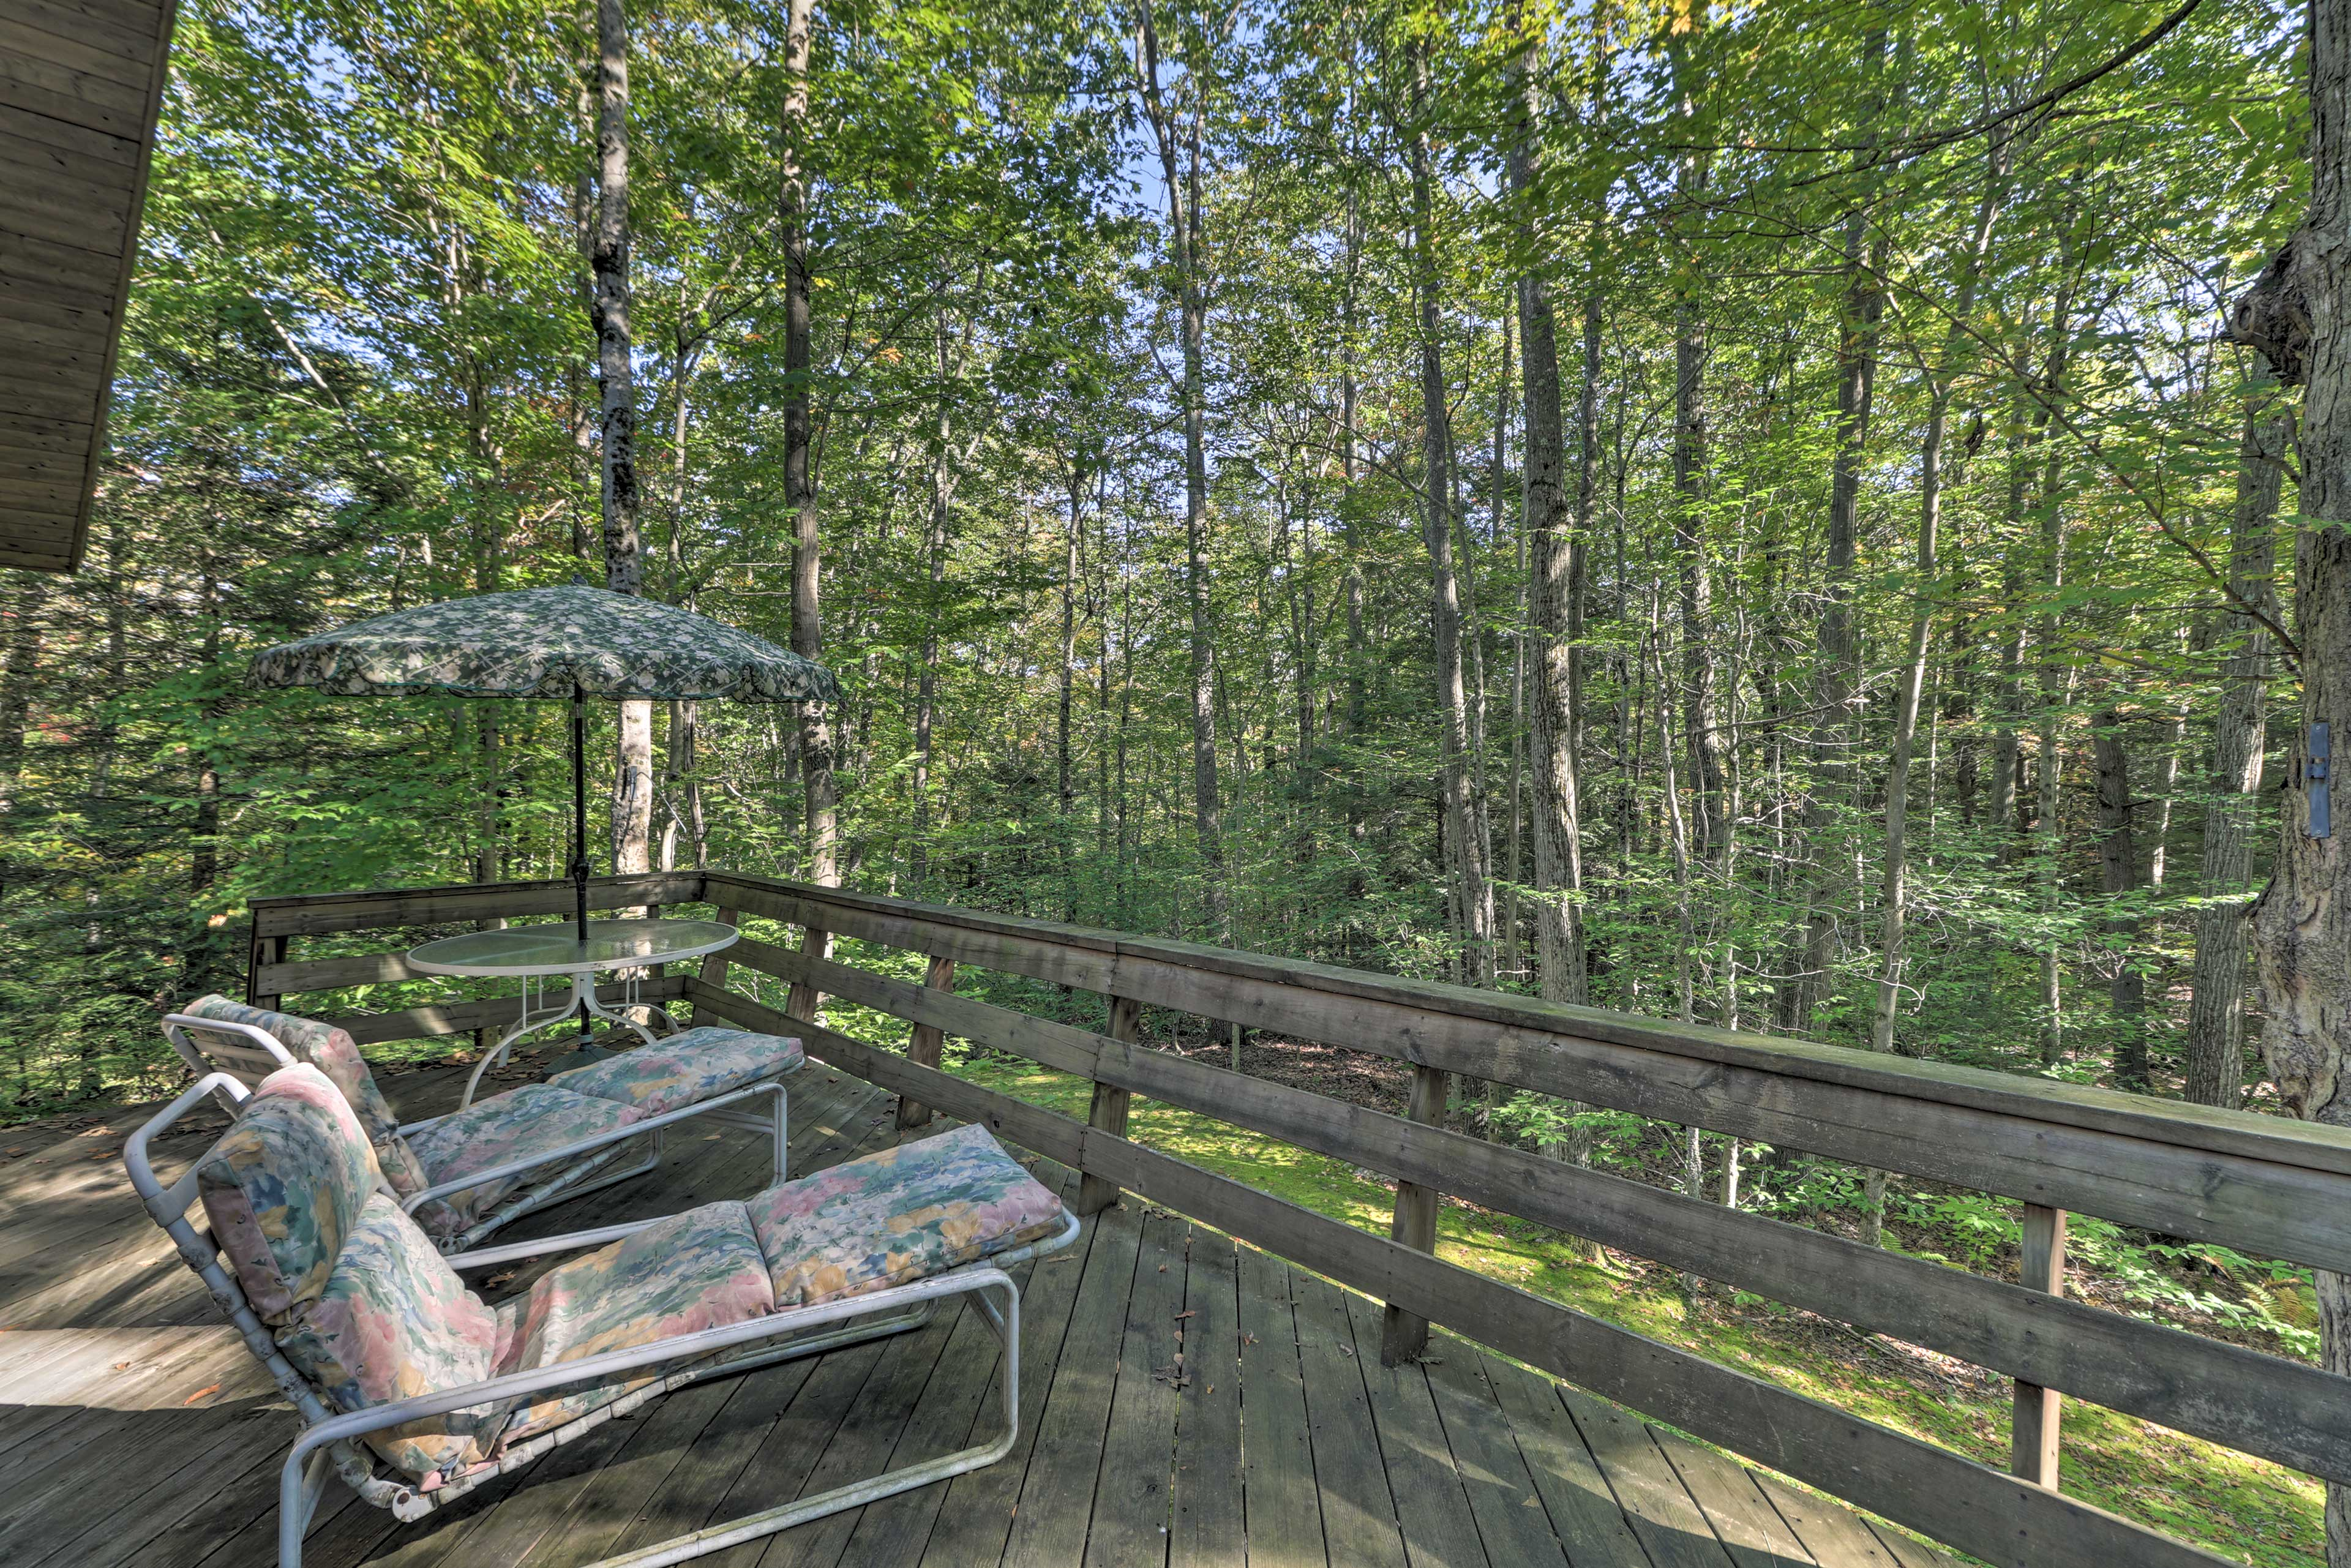 Kick back on the lounge chairs and look out onto the forest!